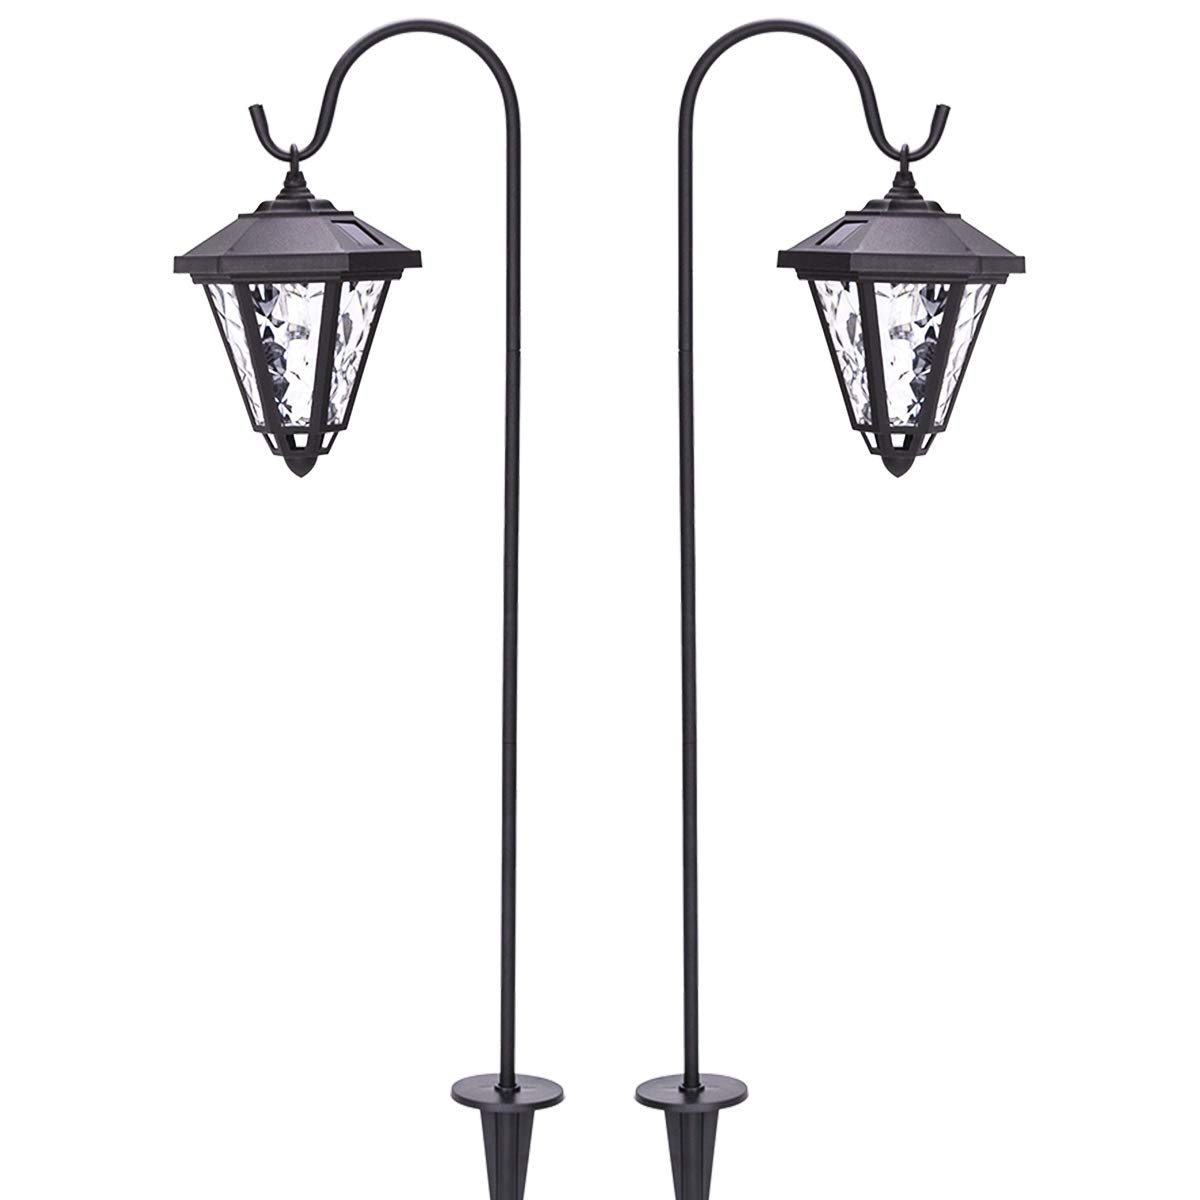 GIGALUMI 31.5 inch Solar Lights Outdoor, Hanging Solar Coach Lantern 2 Shepherd Hooks (2 Pack)